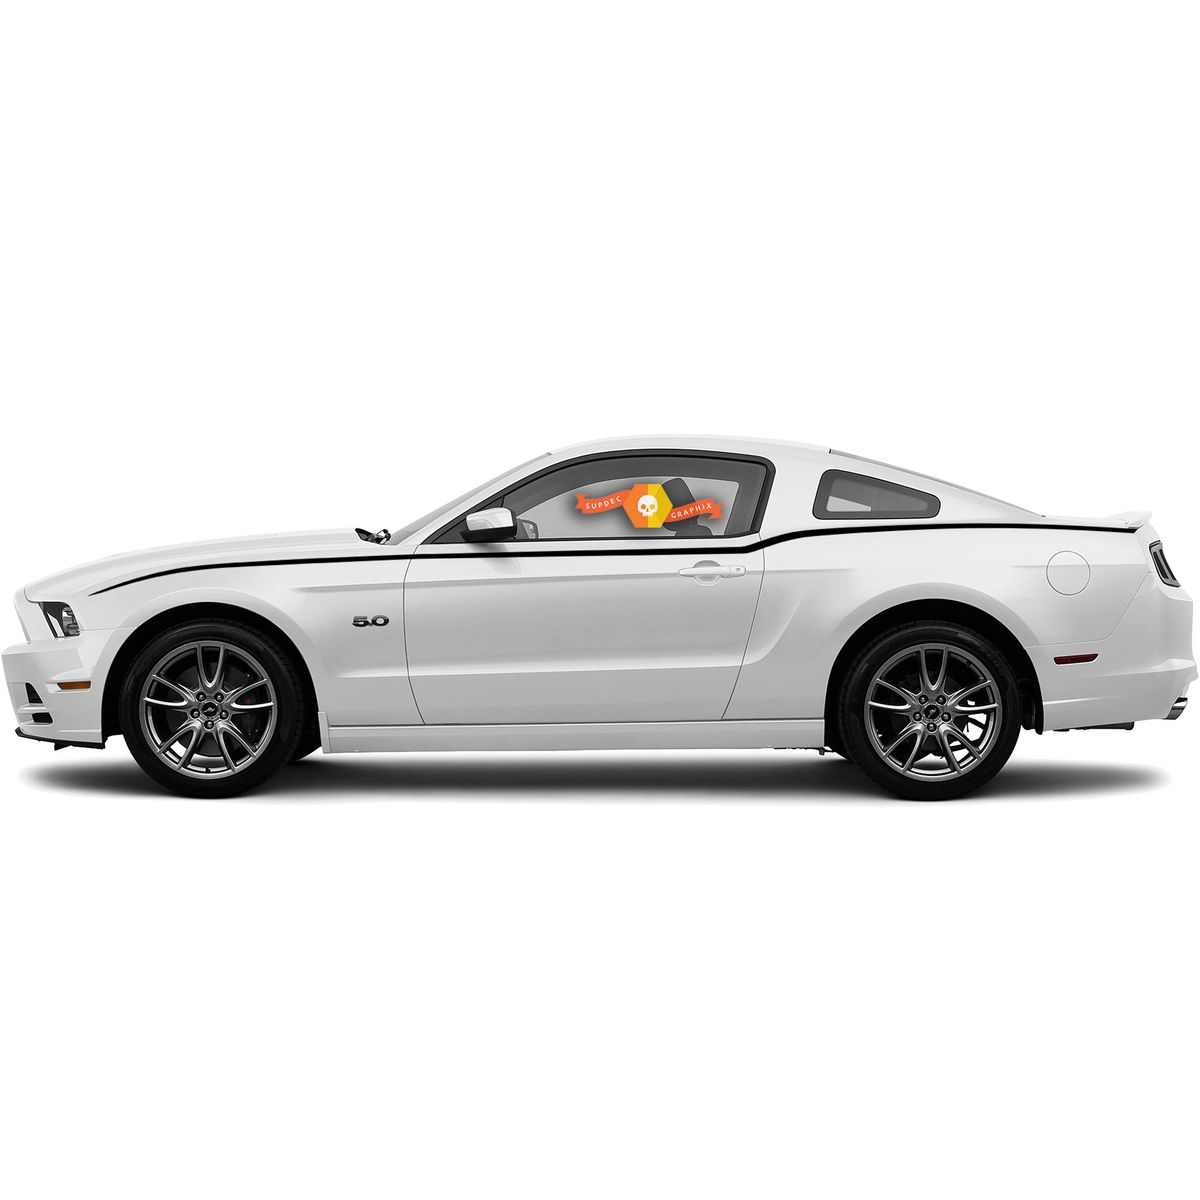 Ford Mustang 2010 2020 Side Accent Stripes 2014 Ford Mustang 2010 Mustang Ford Mustang [ 1200 x 1200 Pixel ]